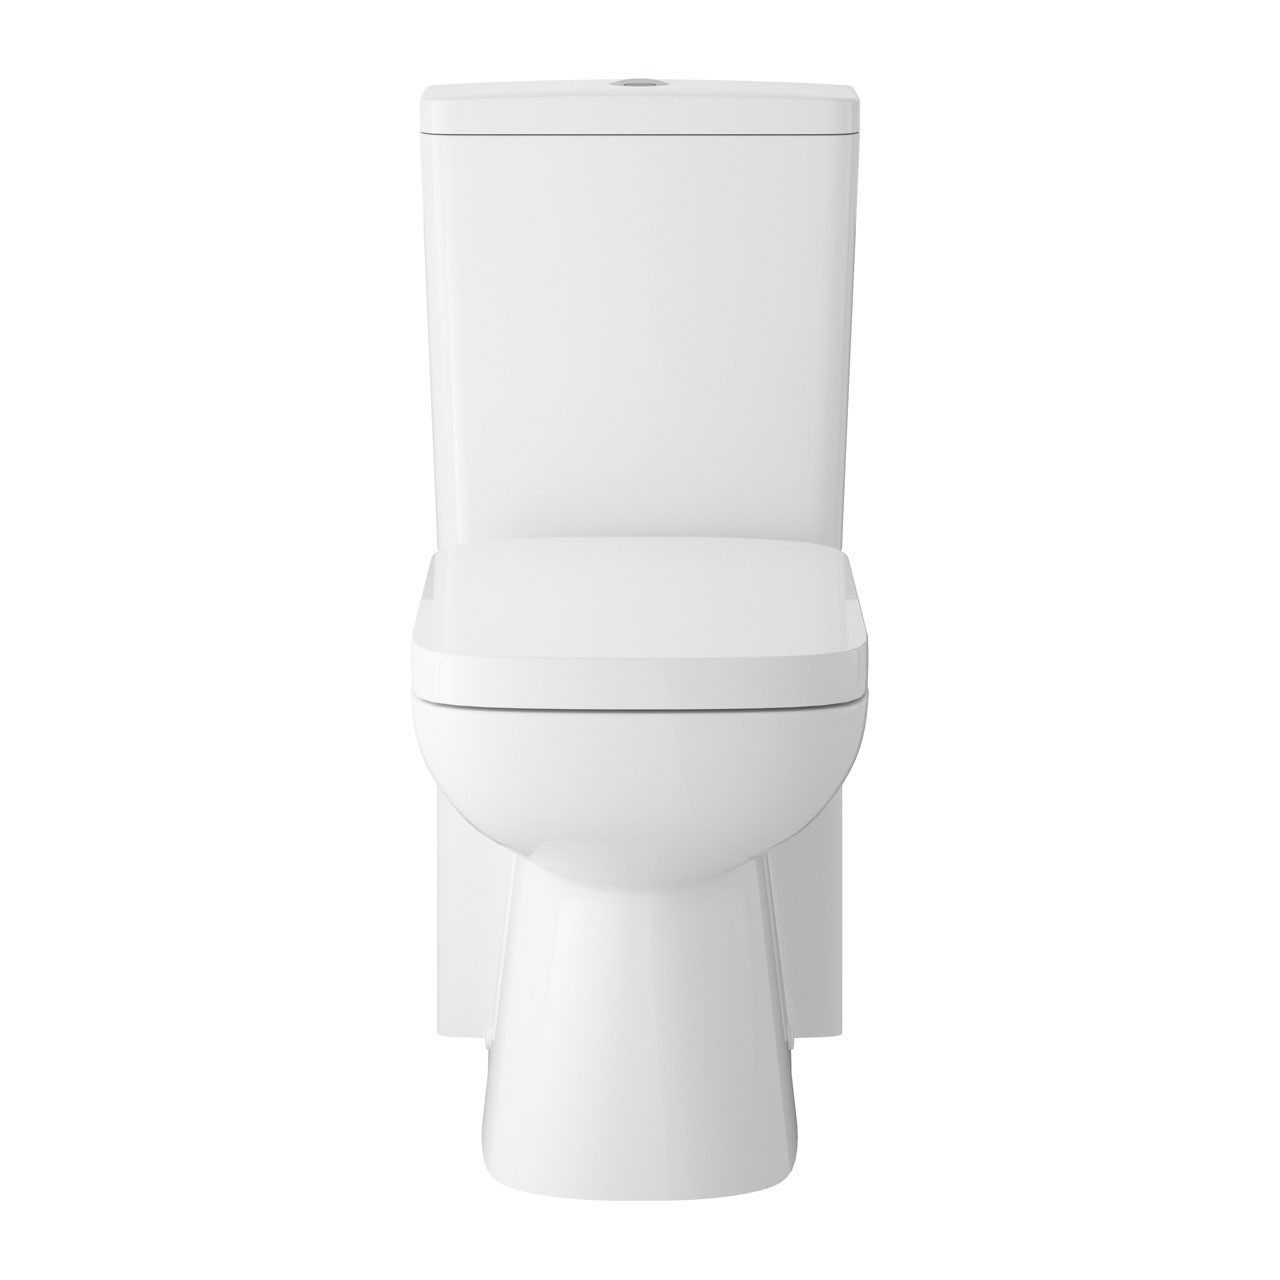 Hudson Reed Arlo Short Projection Toilet Pan, Cistern and Soft Close Toilet Seat - CPC027